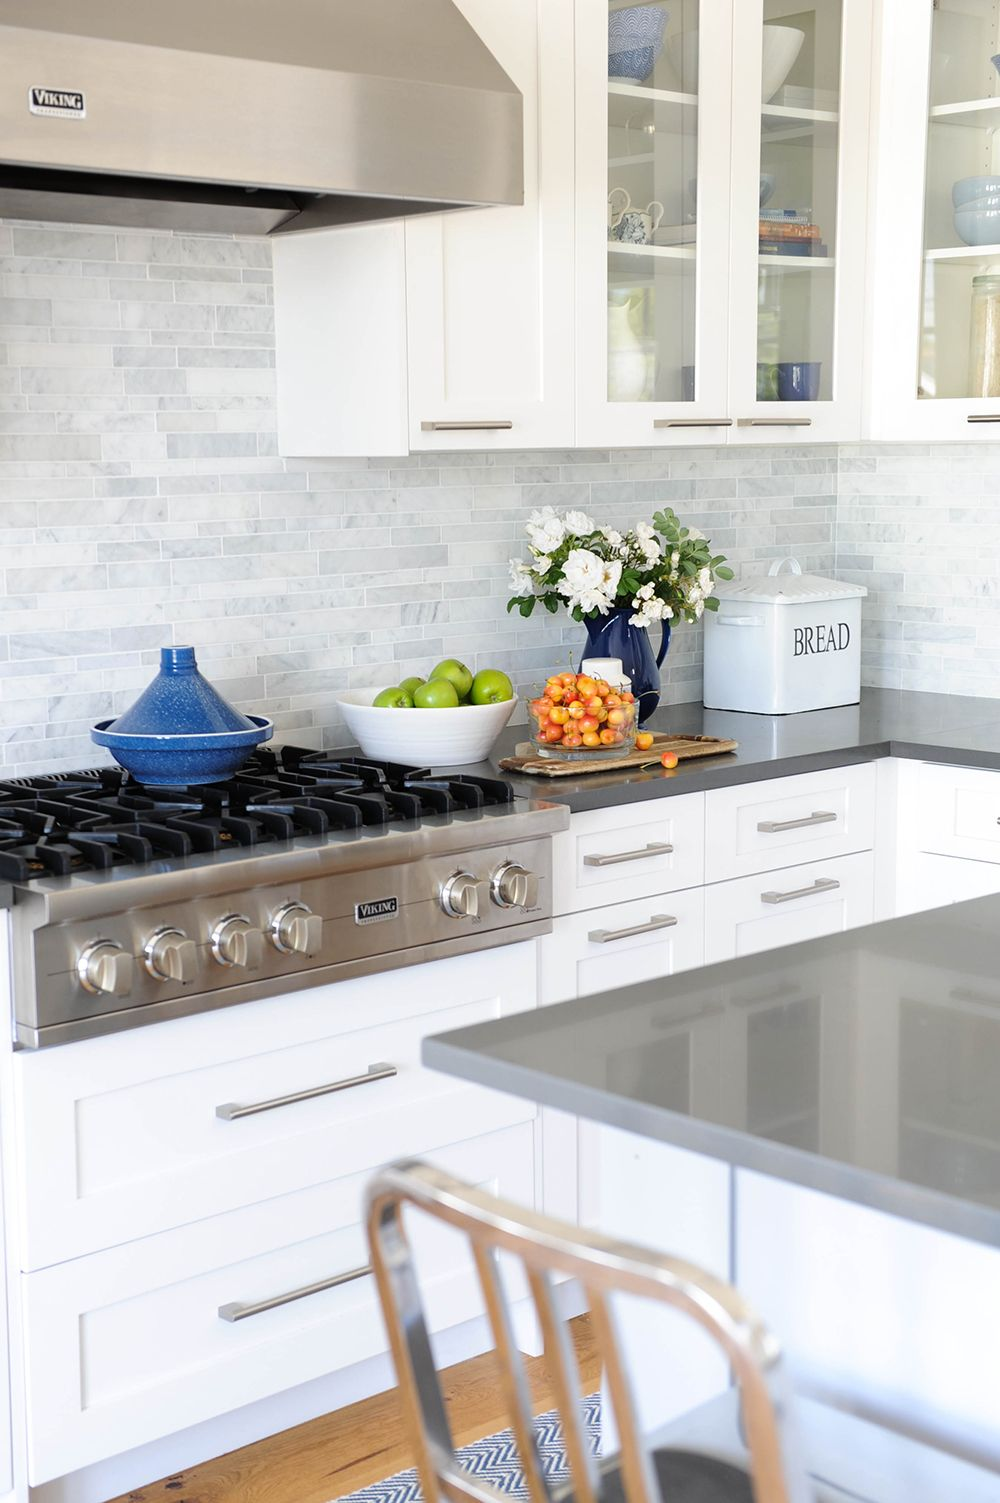 Tracey Ayton Photography 11 Countertop Backsplash Kitchen Remodel Kitchen Design Kitchen Inspirations